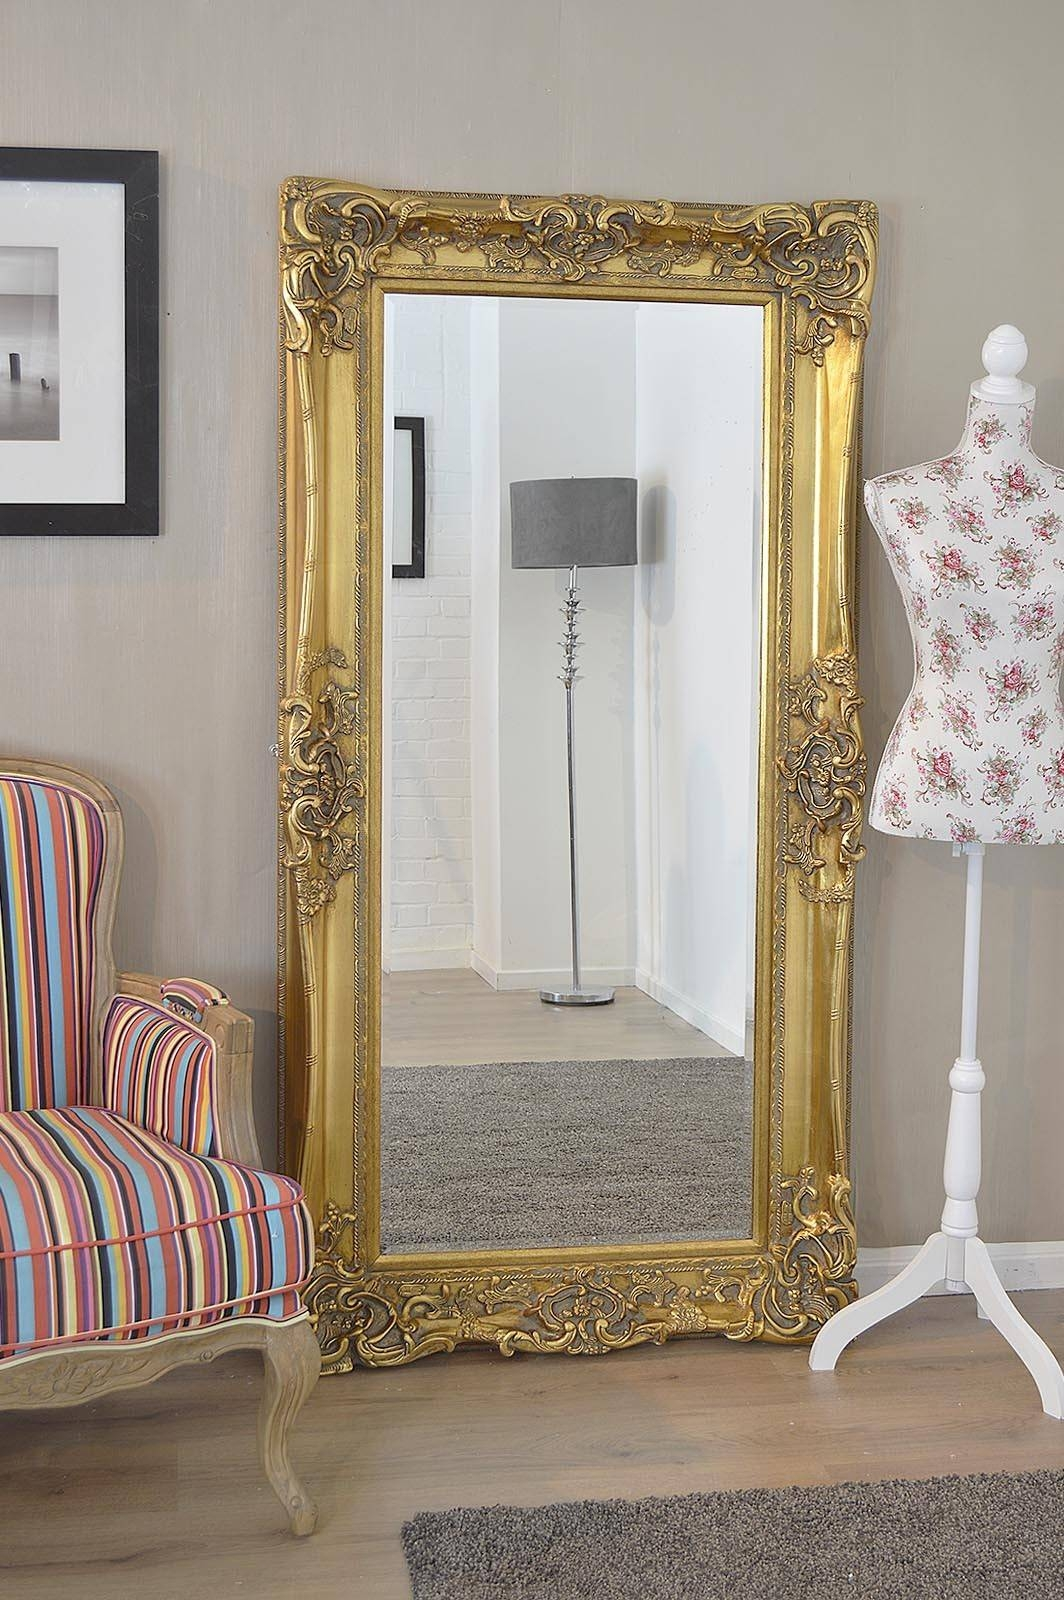 Classic Impression On Antique Wall Mirrors | Vwho throughout Large Gold Antique Mirrors (Image 8 of 15)